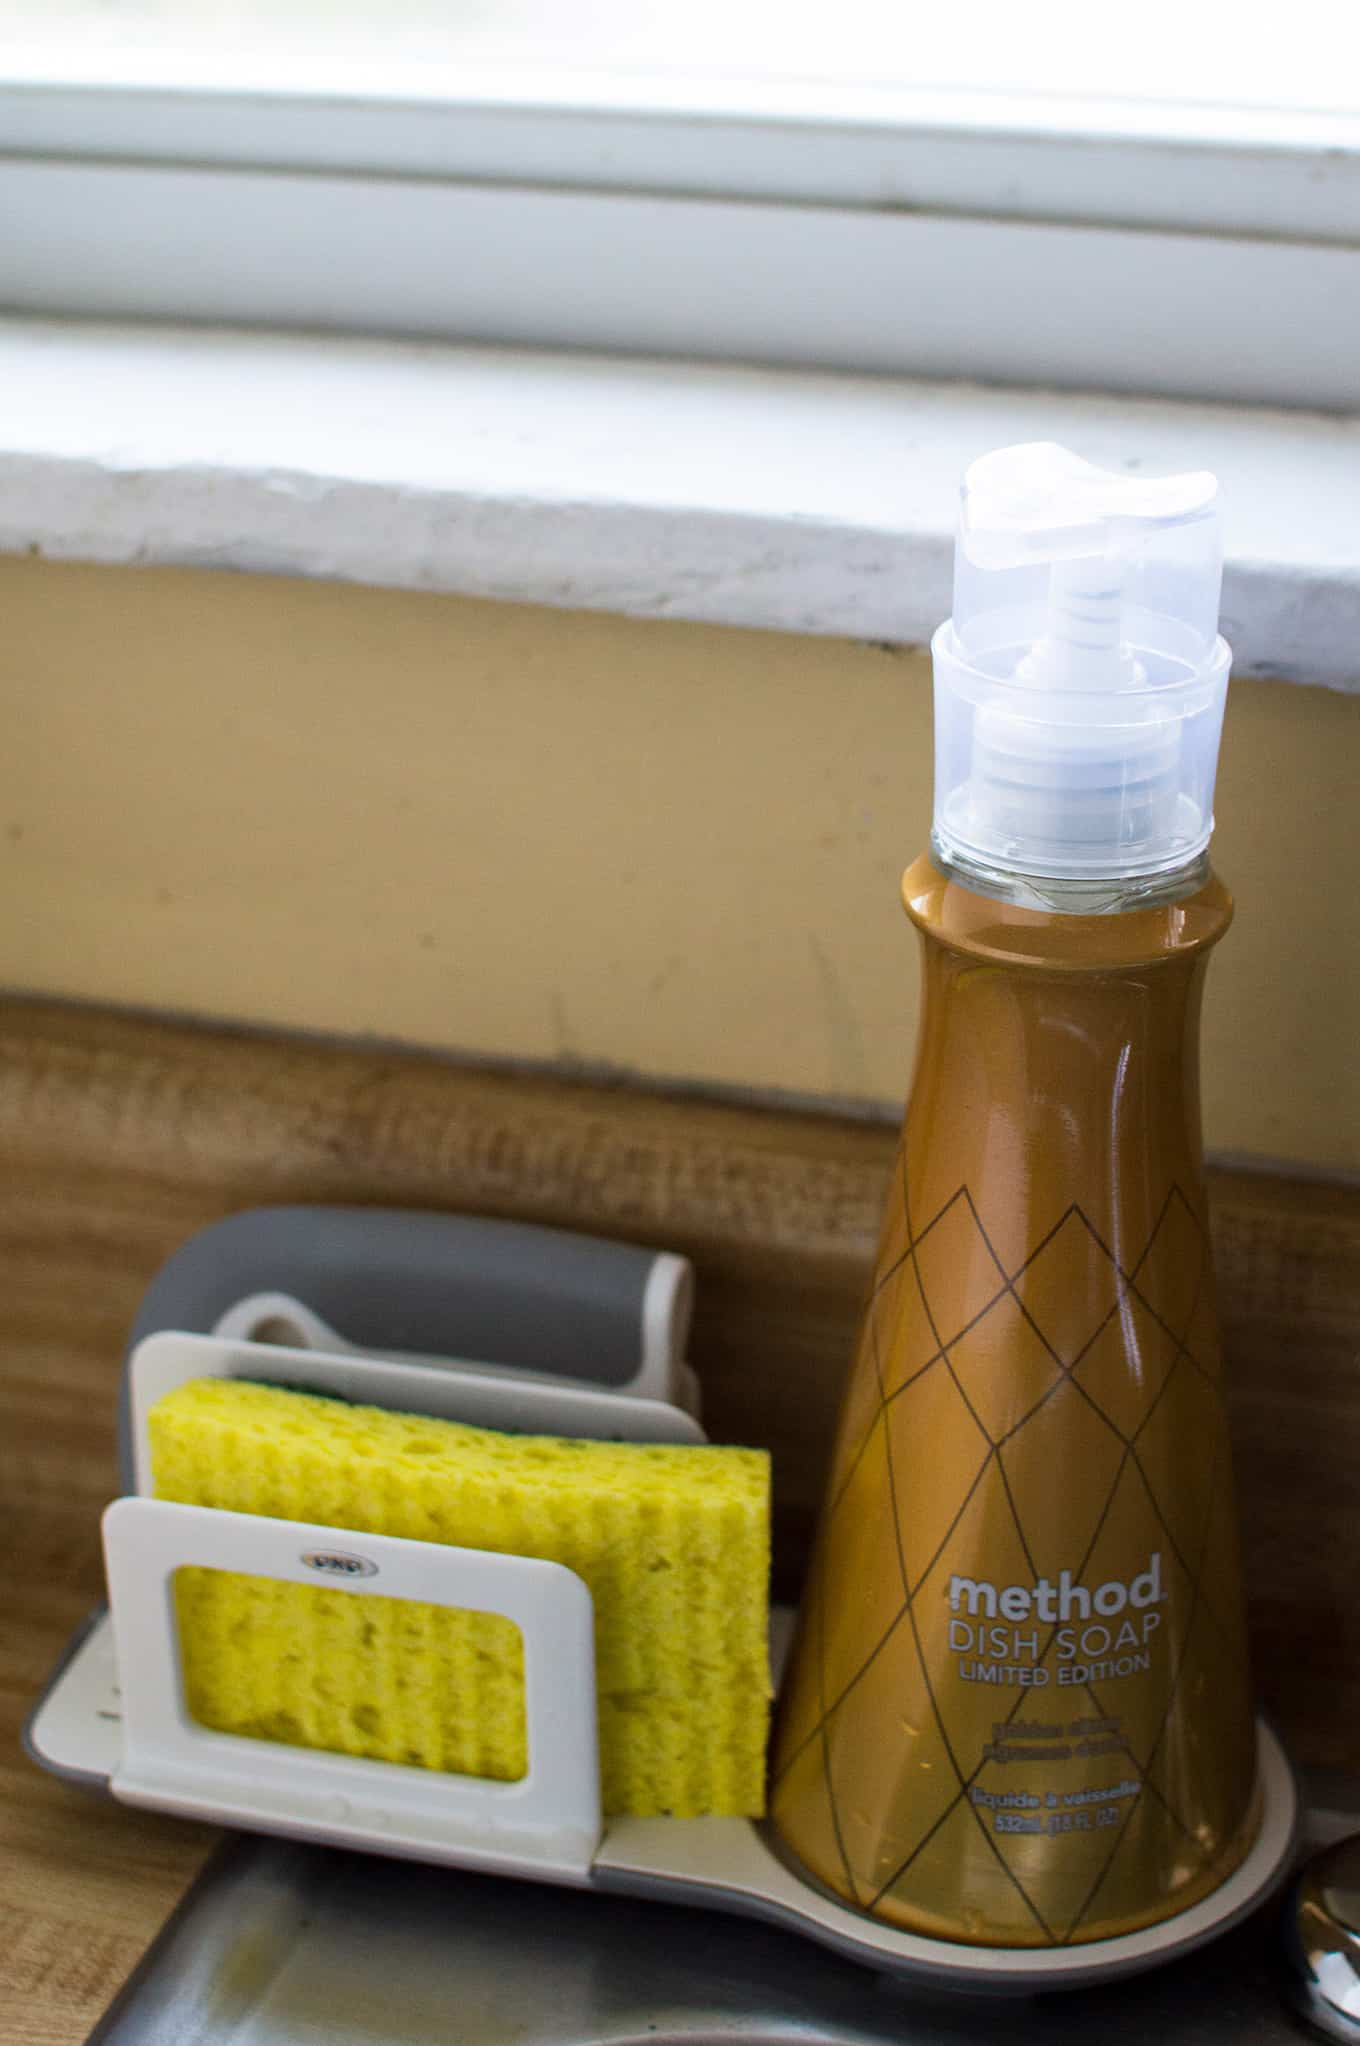 A bottle of dish soap, sponge, and dish squeegee on a sink organizer.